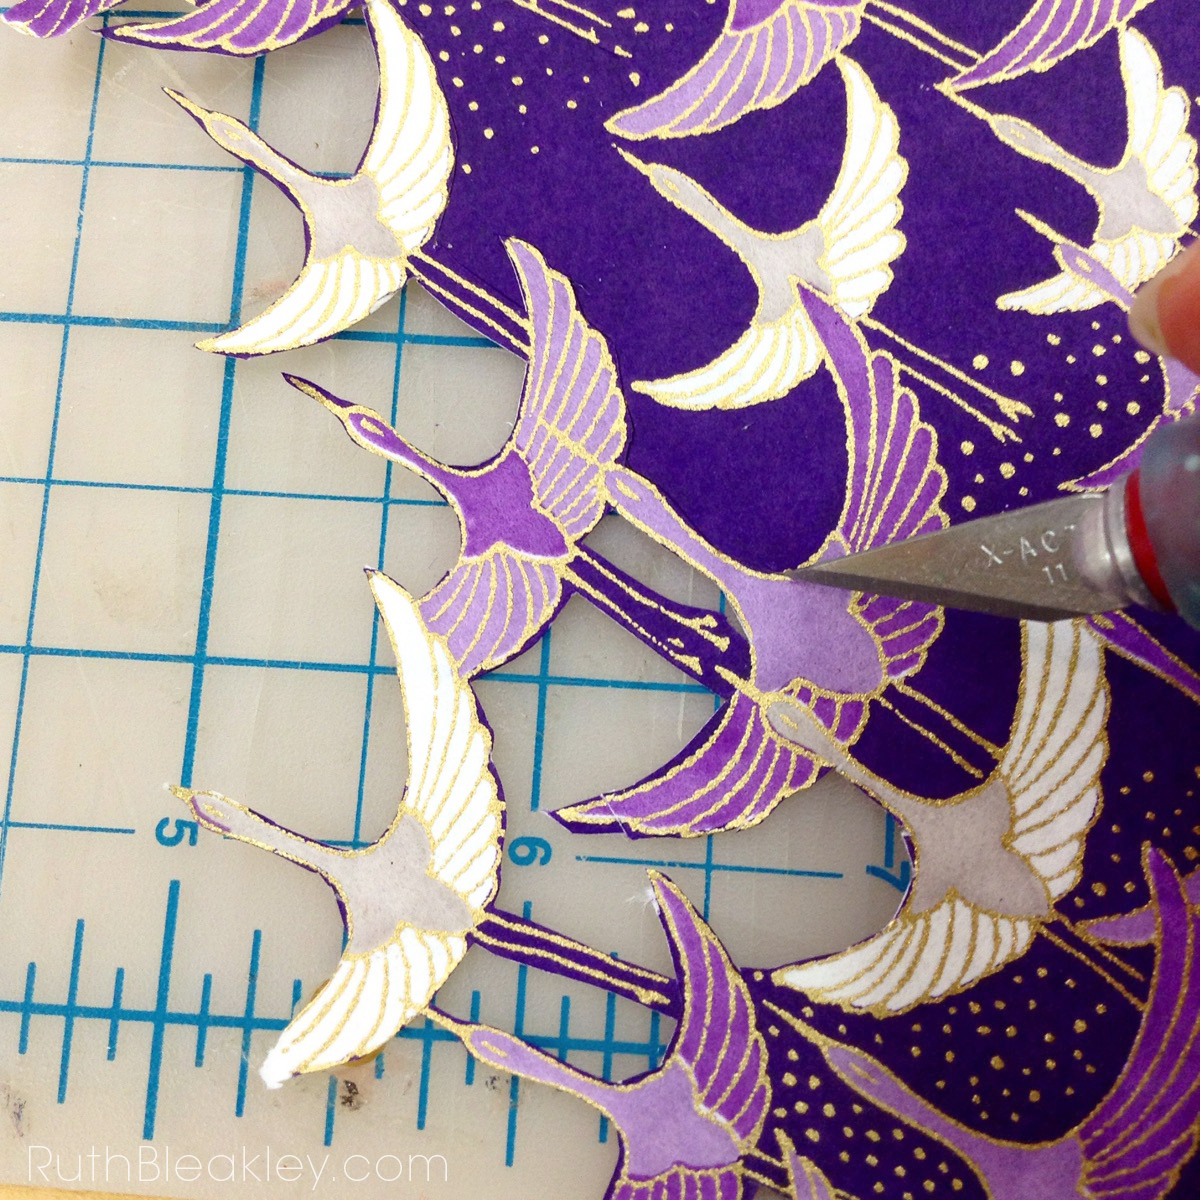 chiyogami bird collage detail for a bookbinding project by Ruth Bleakley